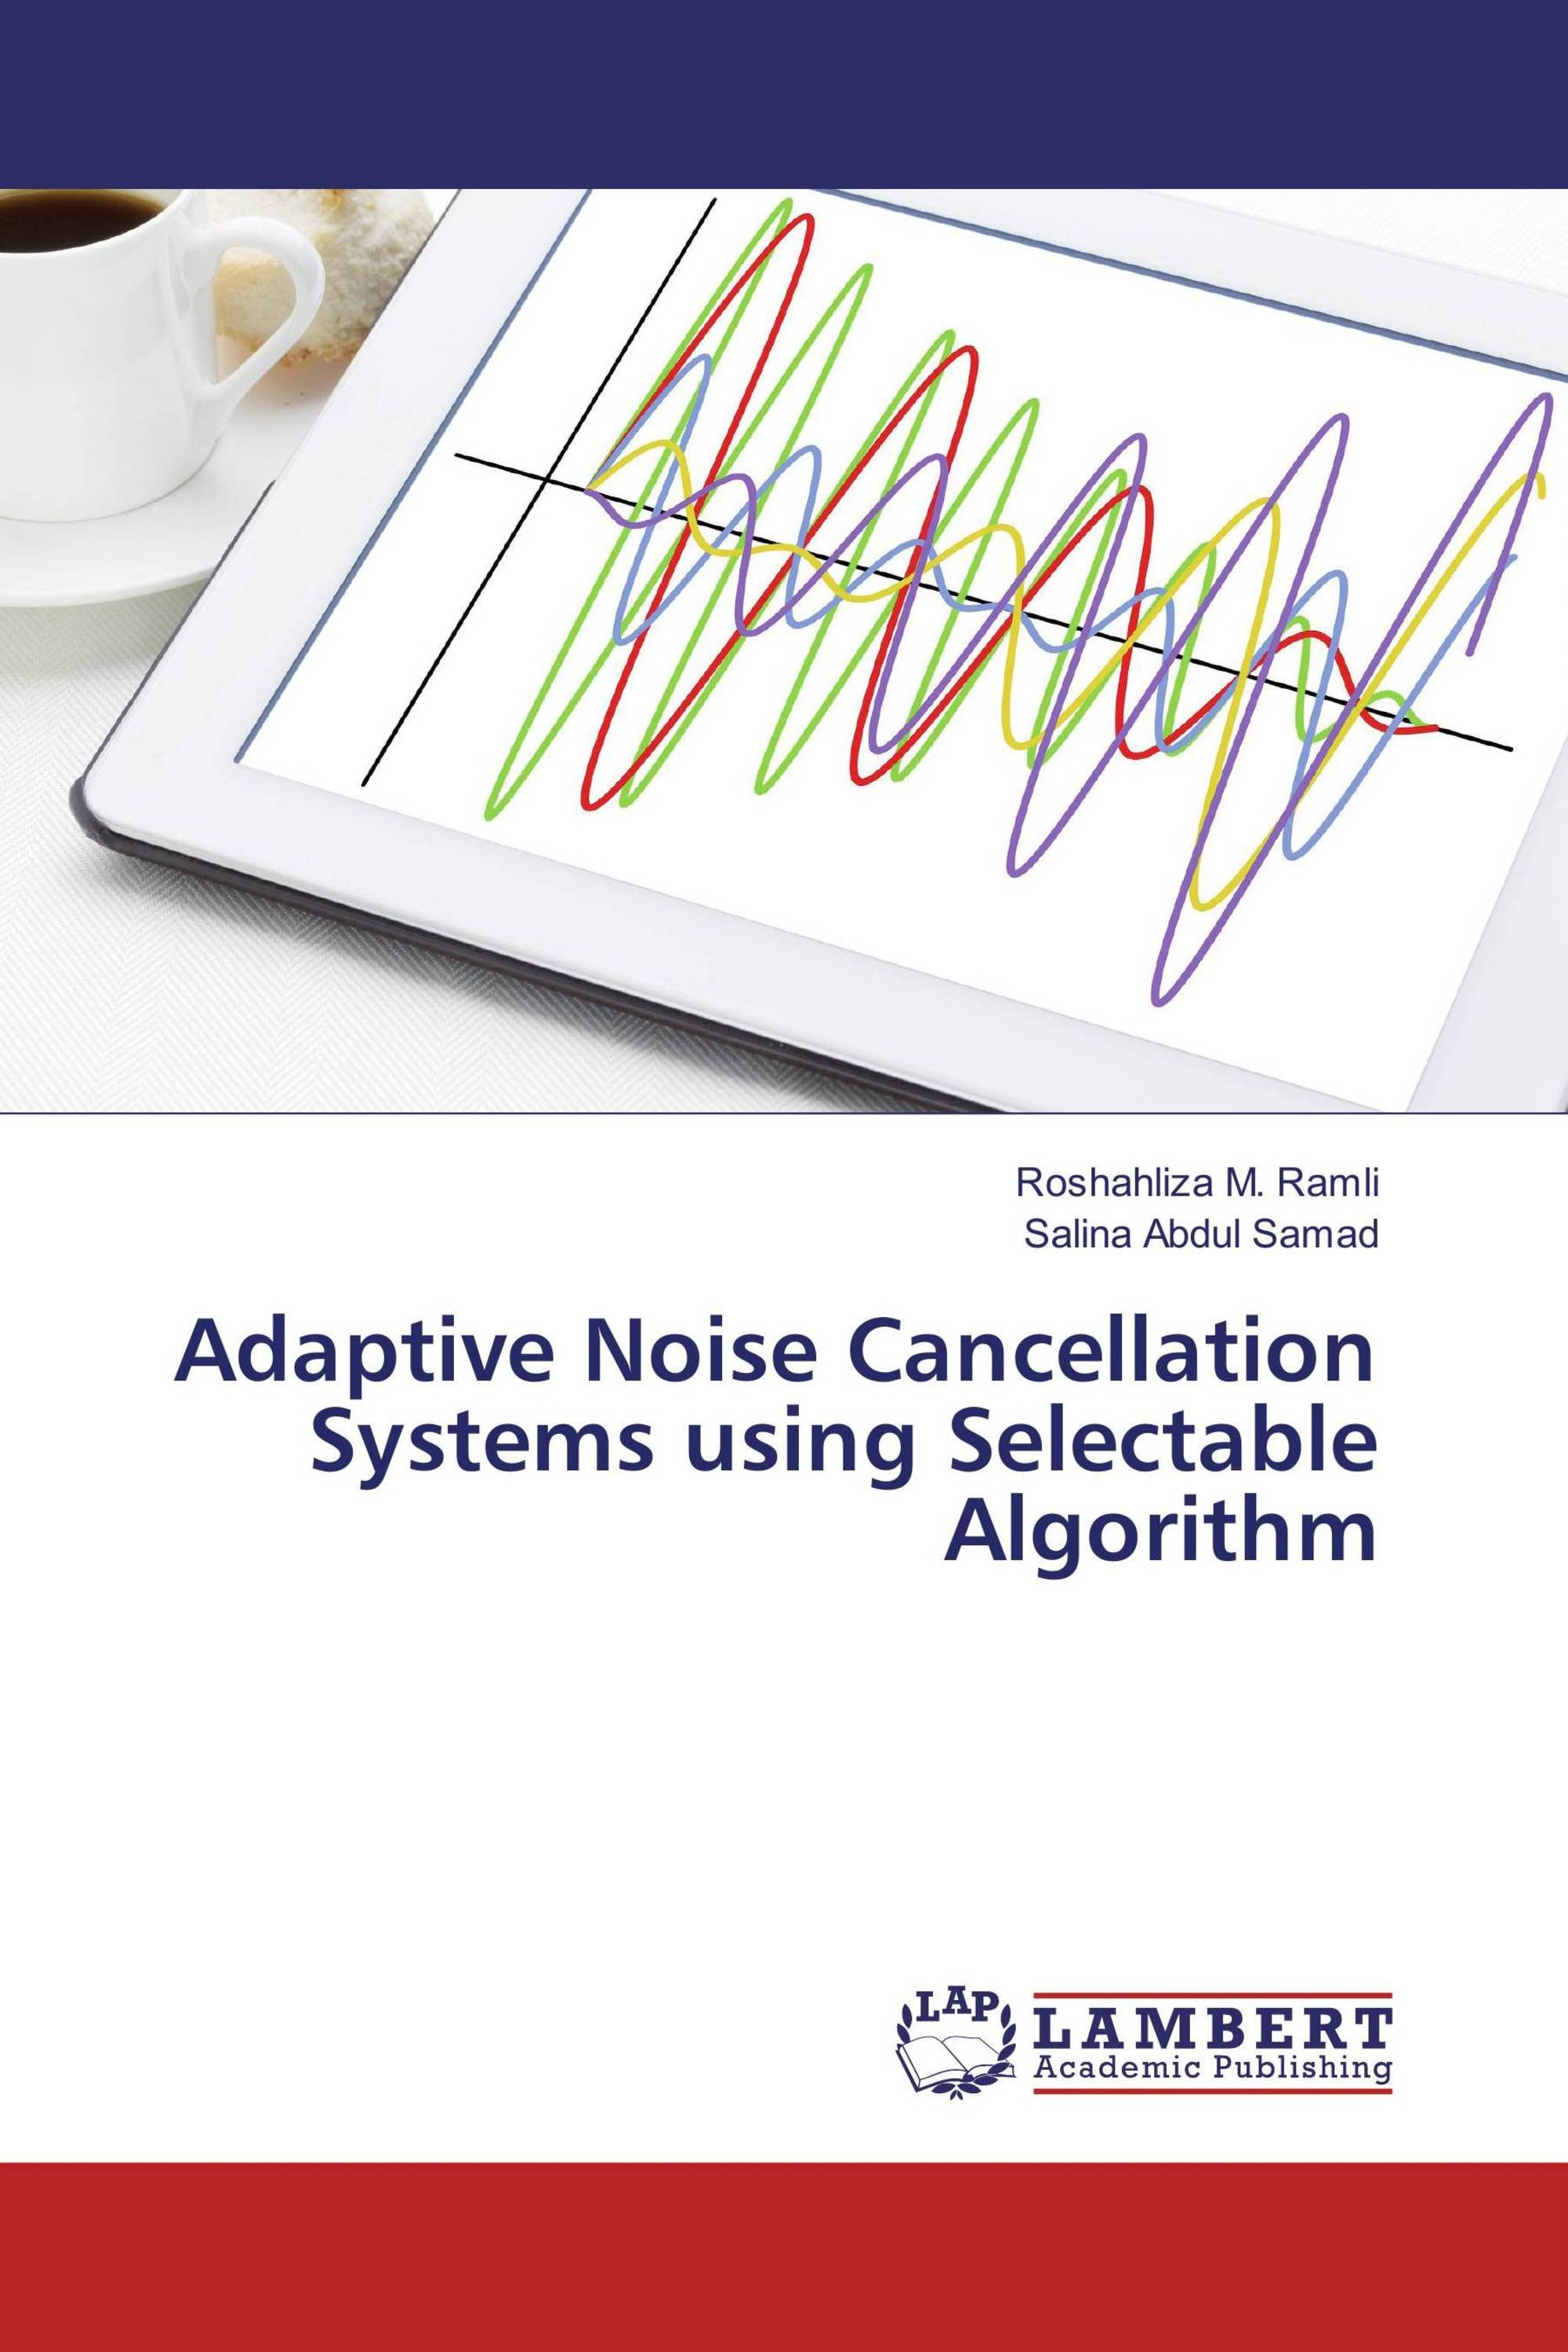 Adaptive Noise Cancellation Systems using Selectable Algorithm